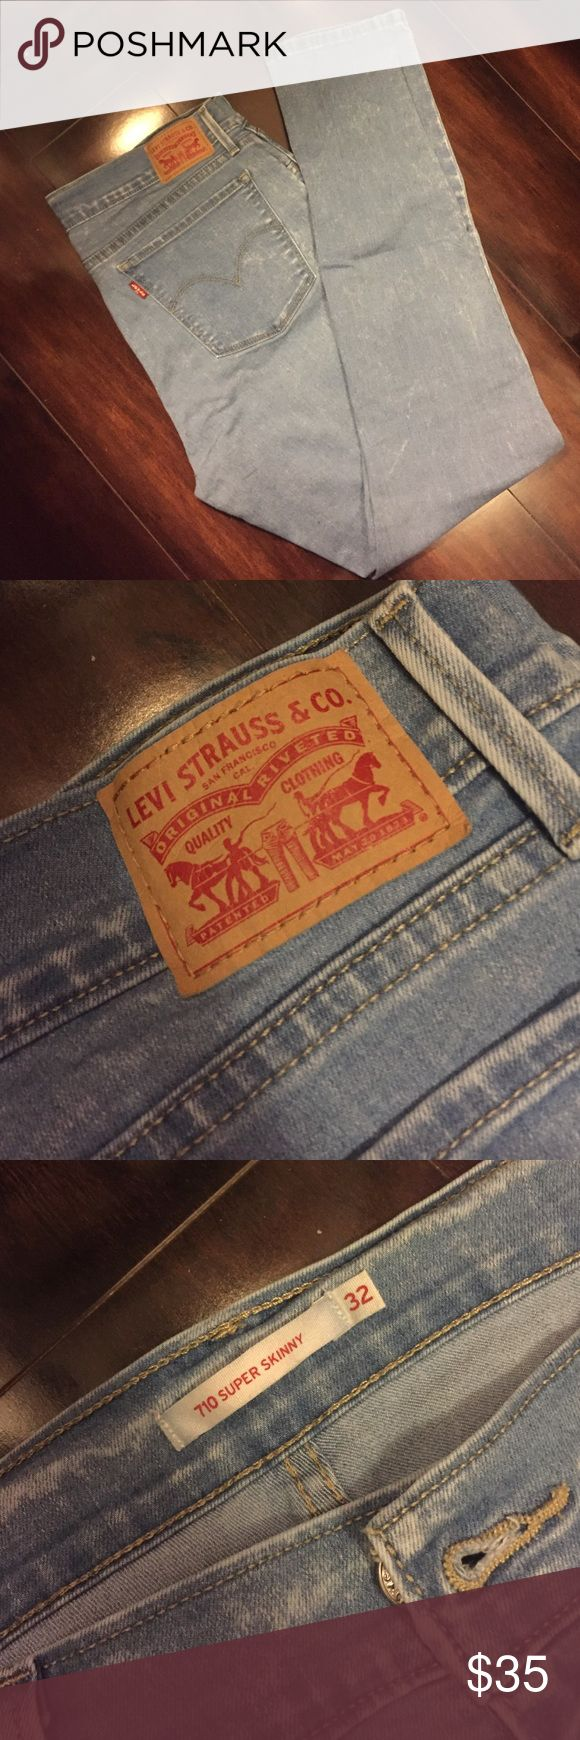 Women's Levi's stone wash super skinny jeans Had these jeans for a few months and only worn a couple of times. Levi's Jeans Skinny